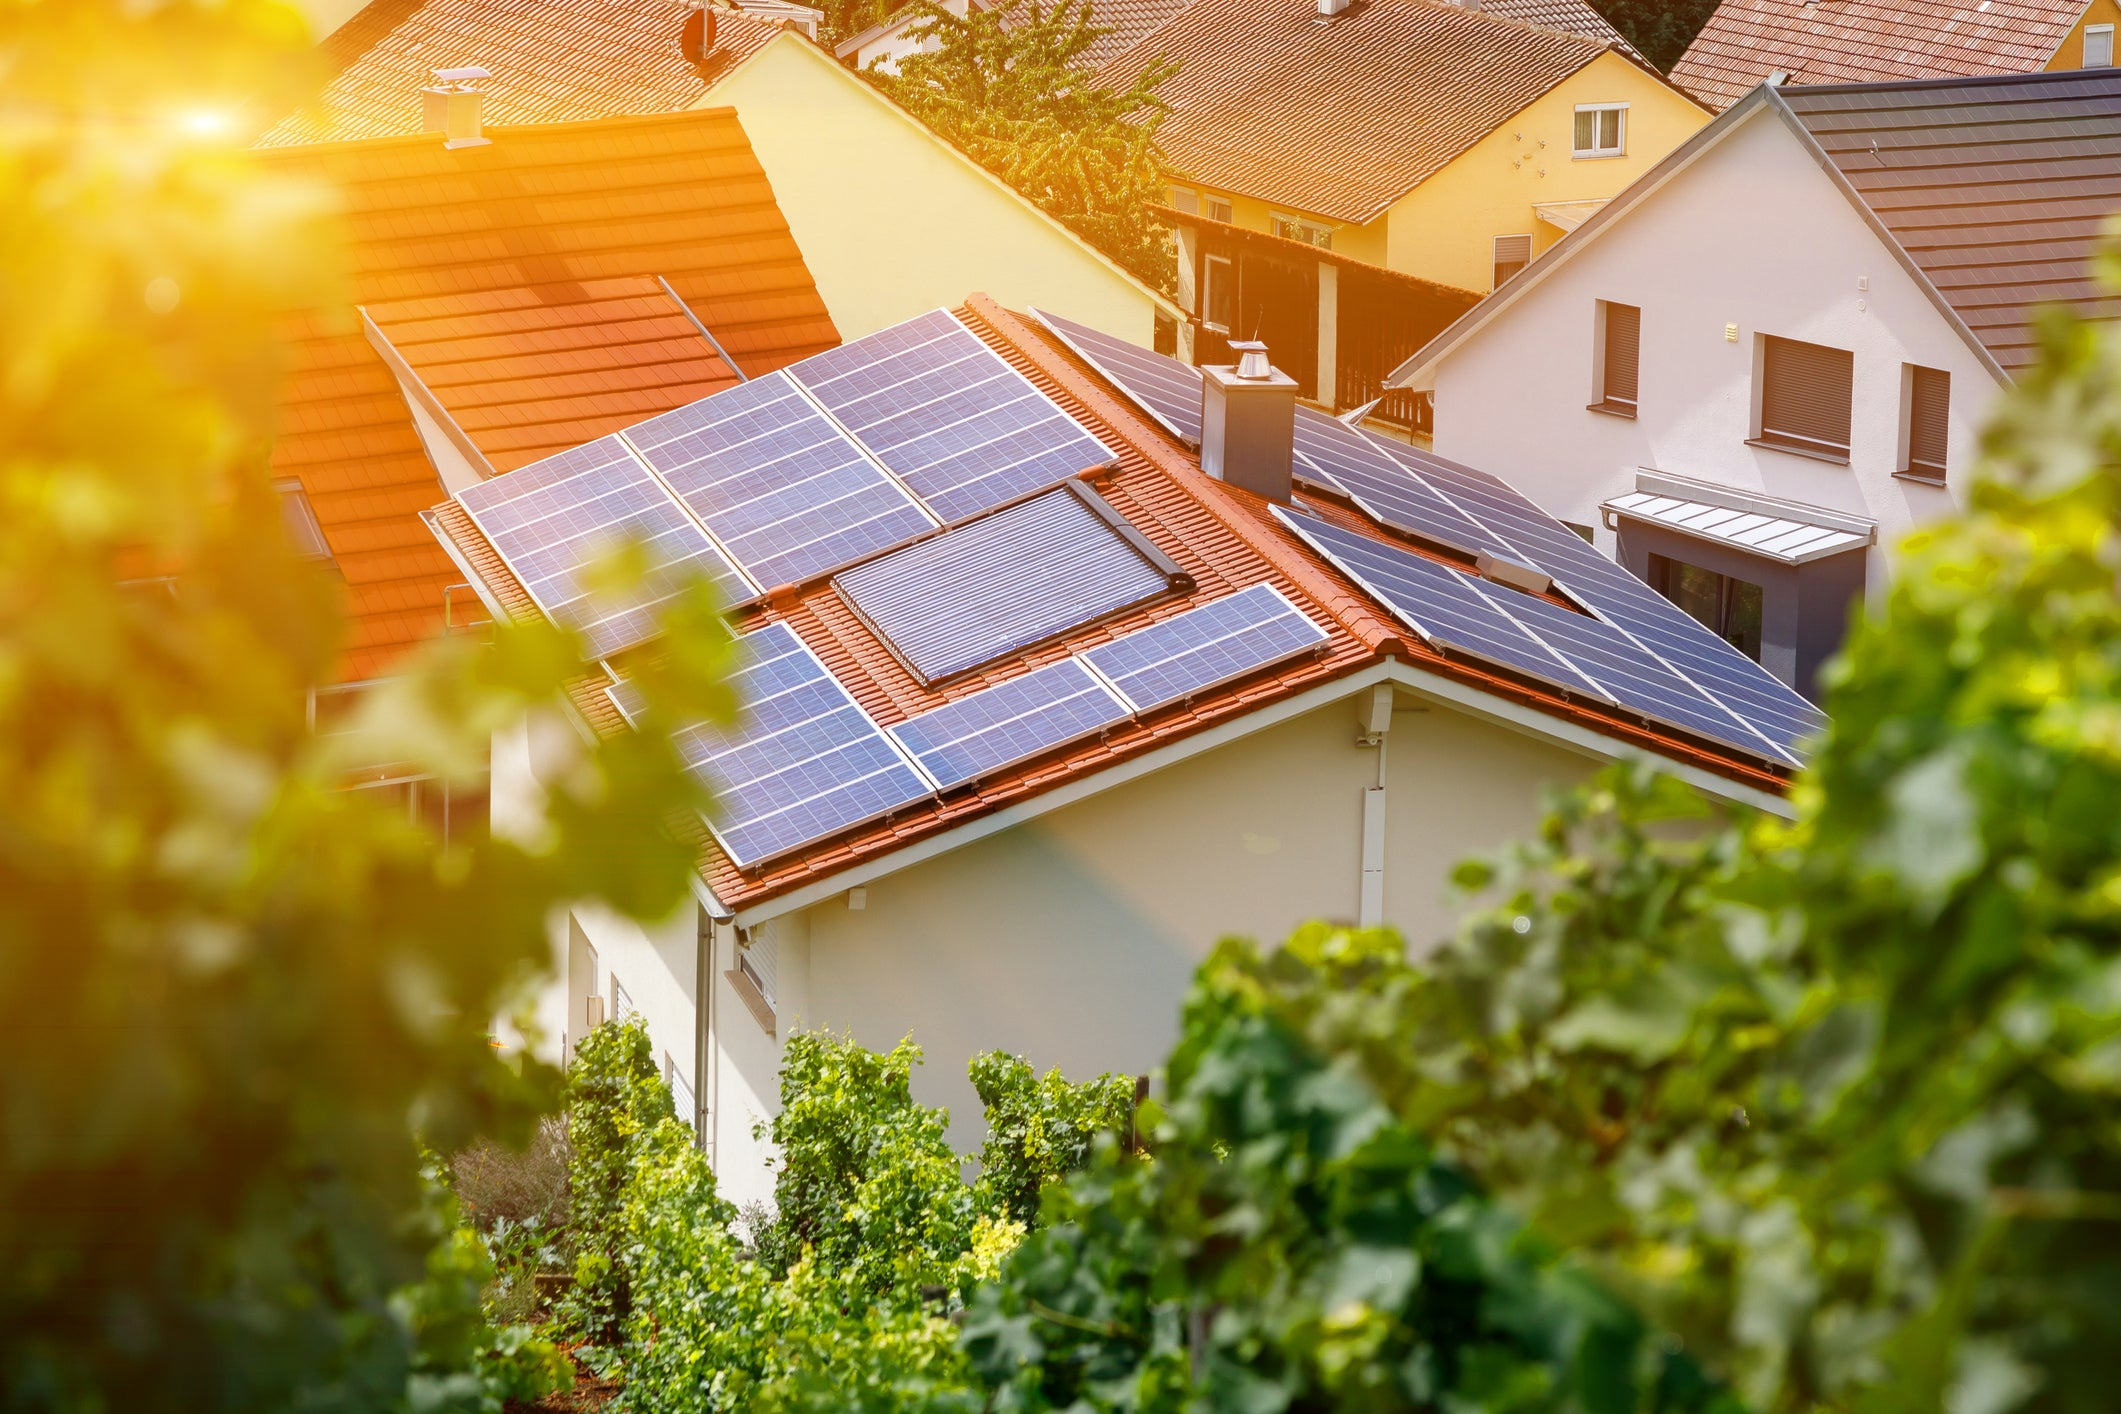 Why Sunrun and Vivint Solar Stocks Soared Today